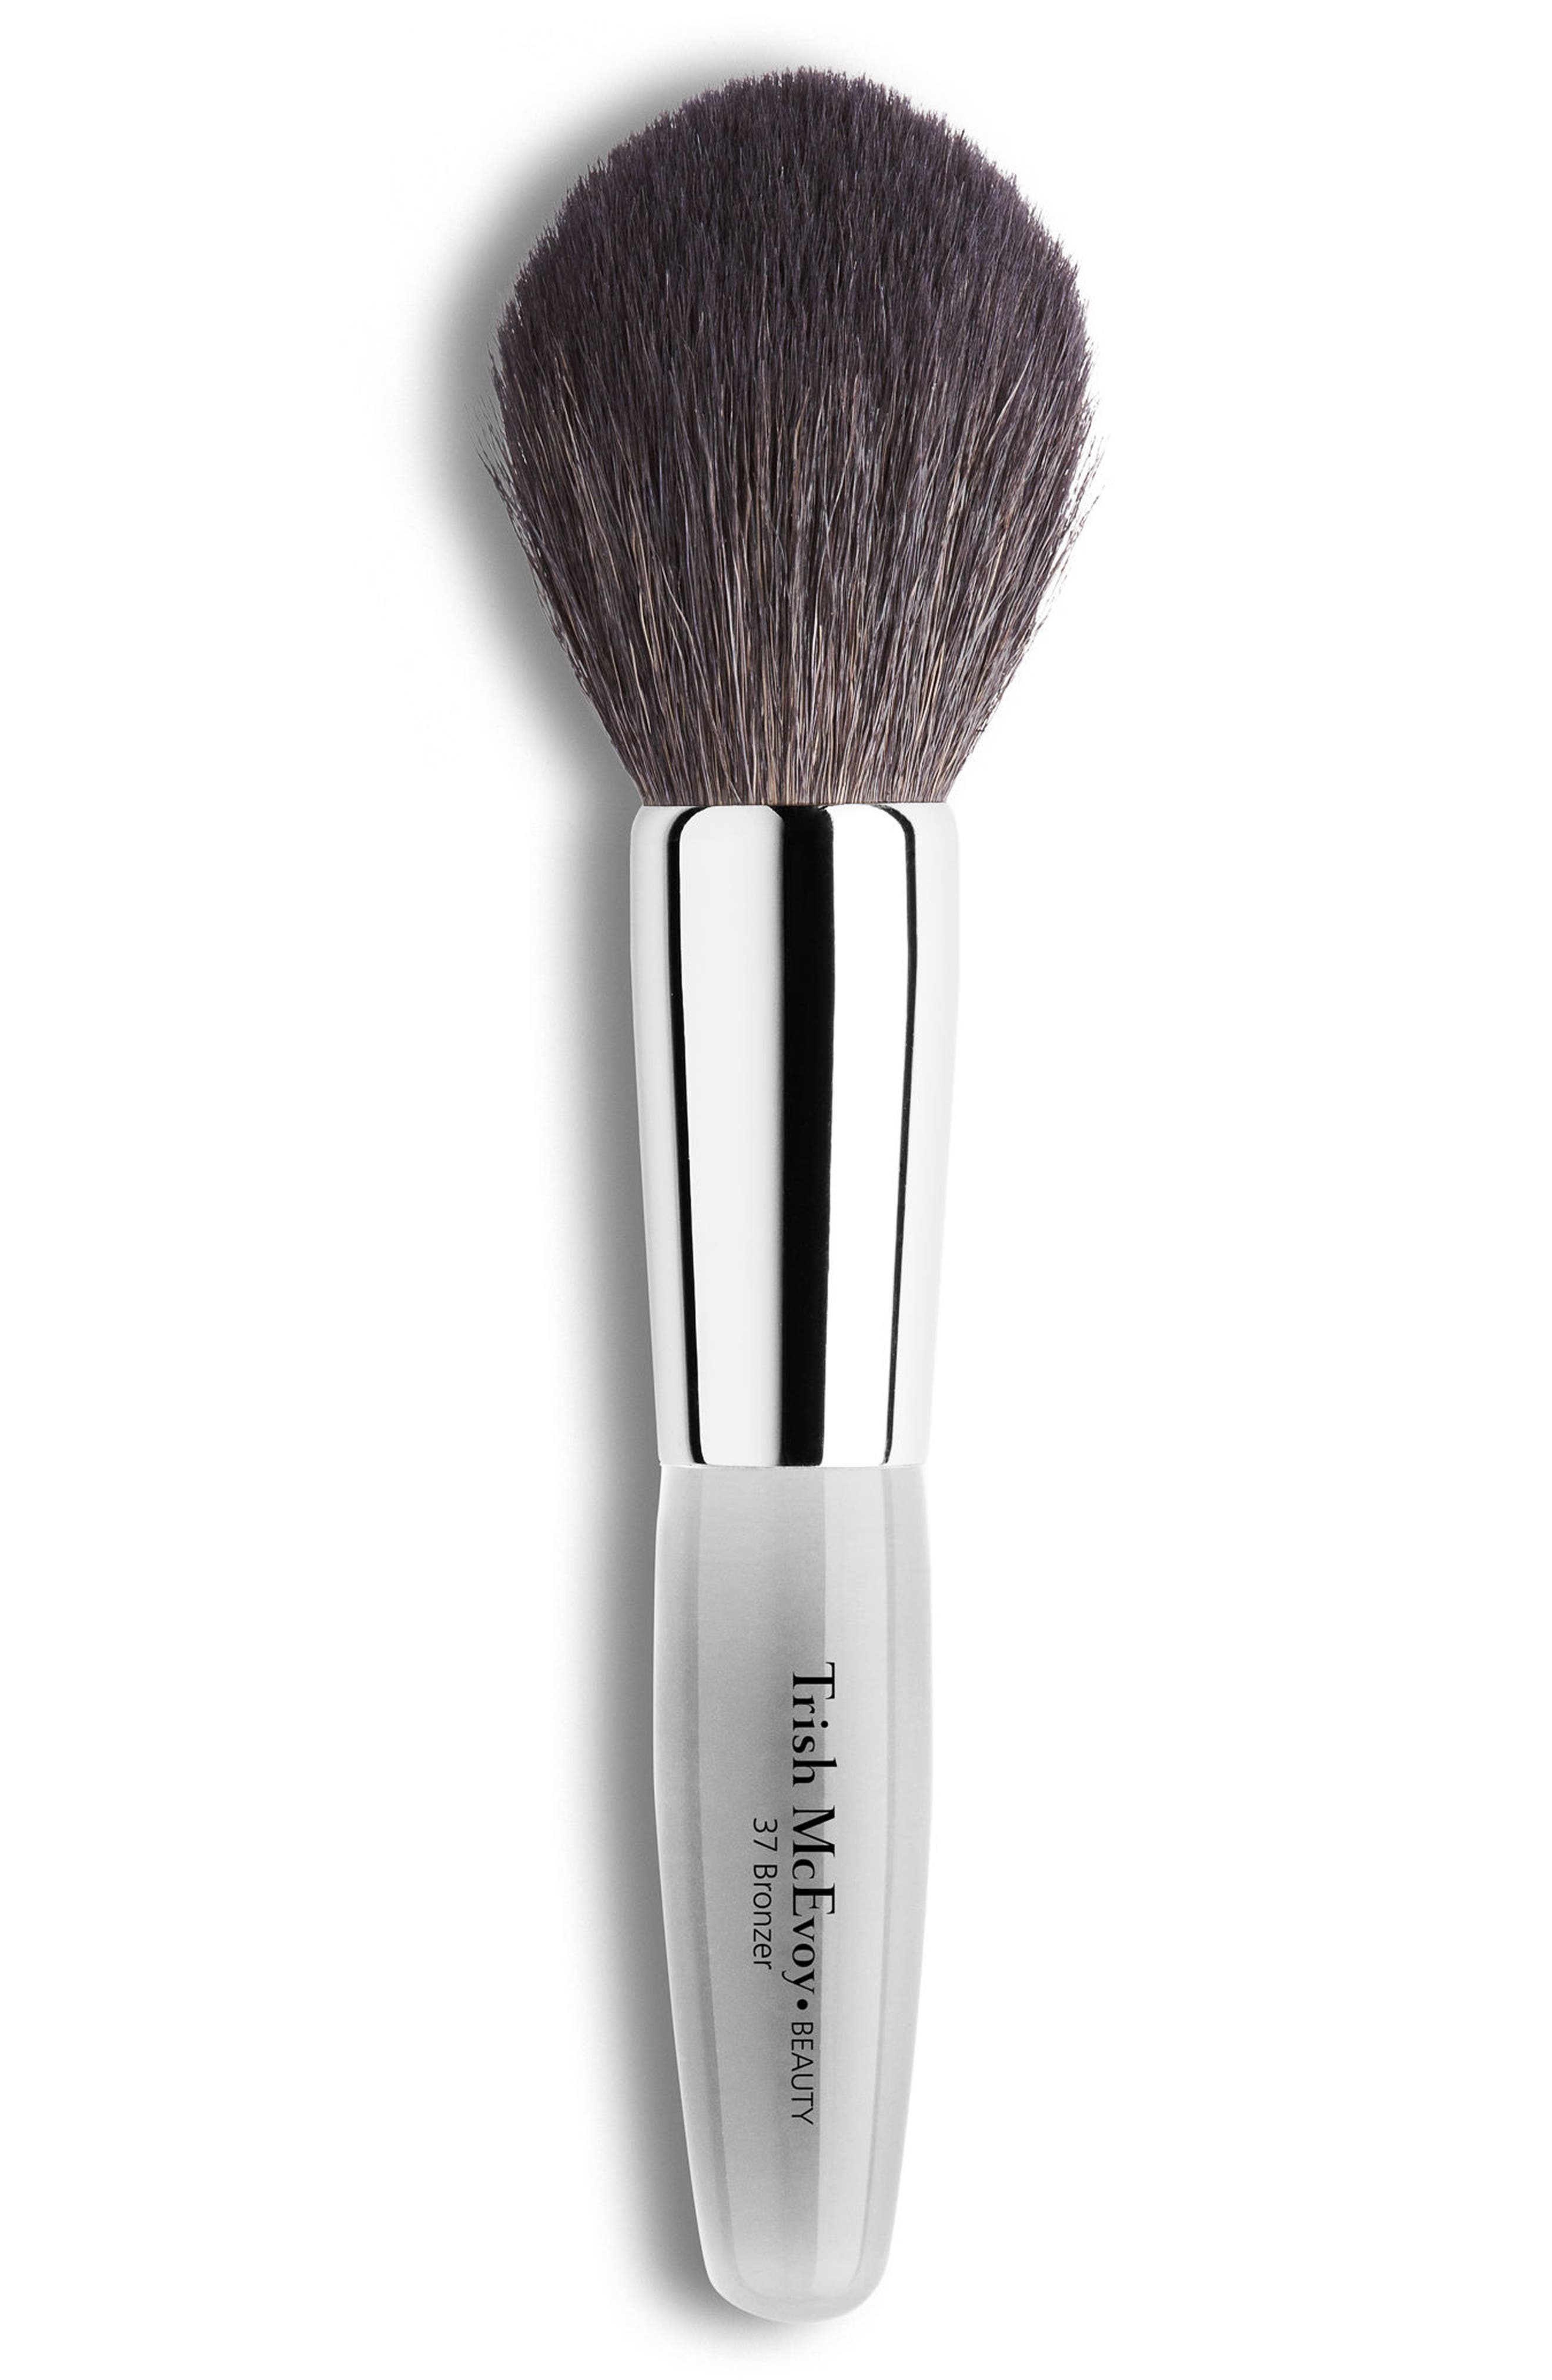 Main Image - Trish McEvoy #37 Bronzer Brush